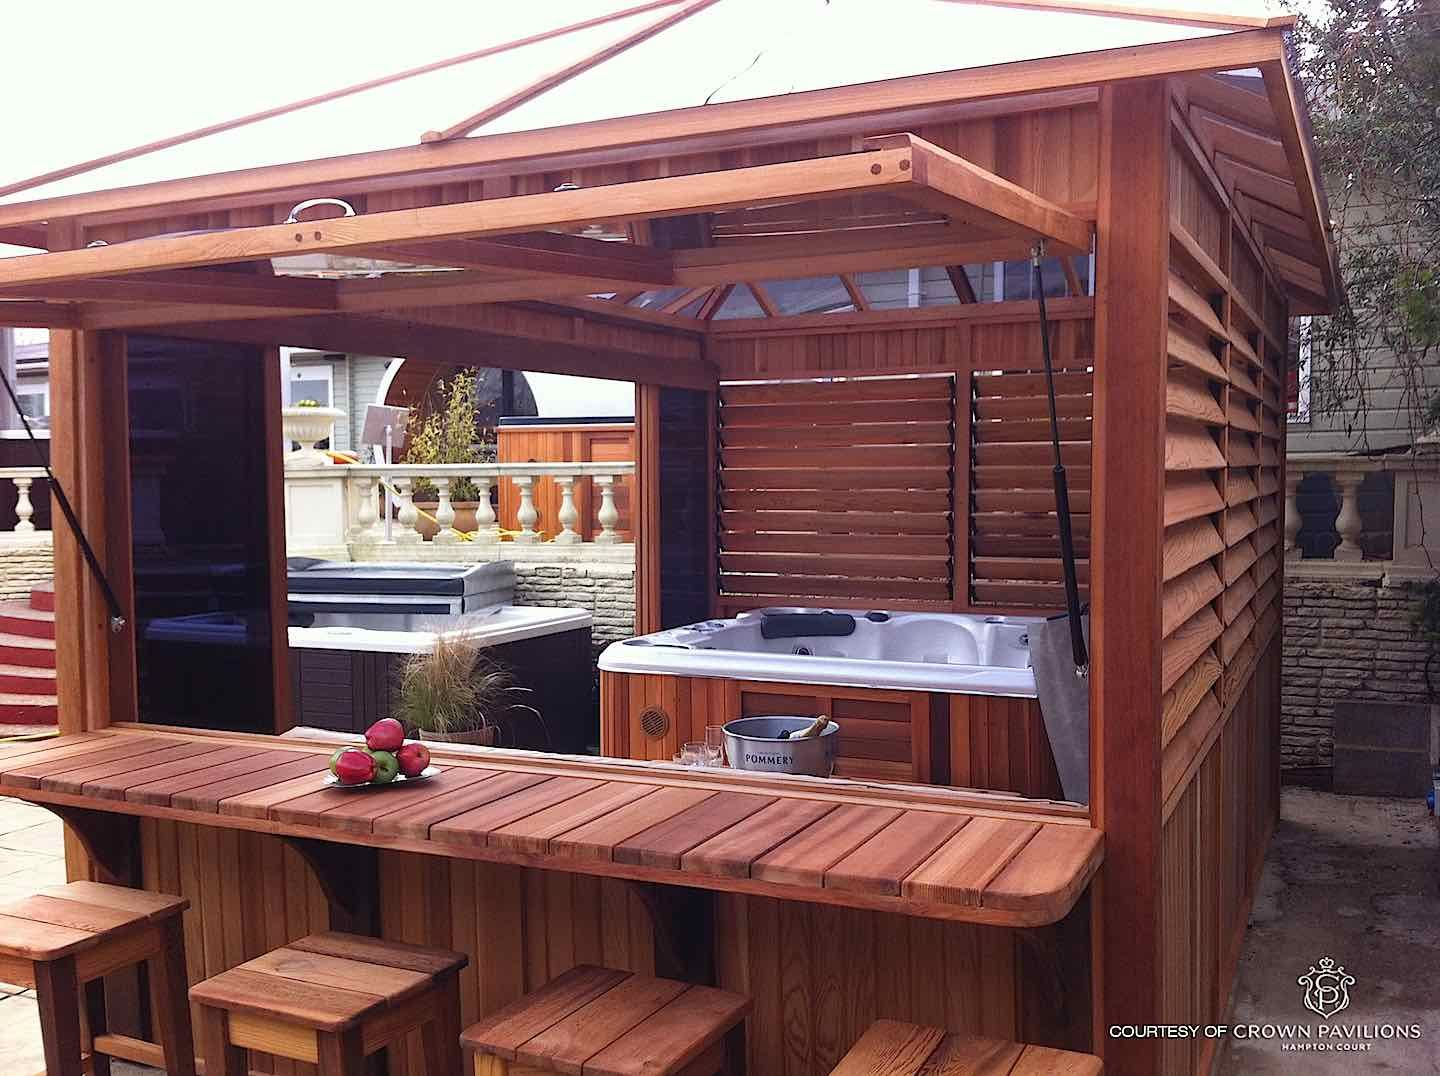 Some Of The Hot Tub X2f Spa Enclosures Built With The Flex Fence Hardware Kit Include A Louvered Cedar Spa Hot Tub Outdoor Hot Tub Landscaping Hot Tub Patio